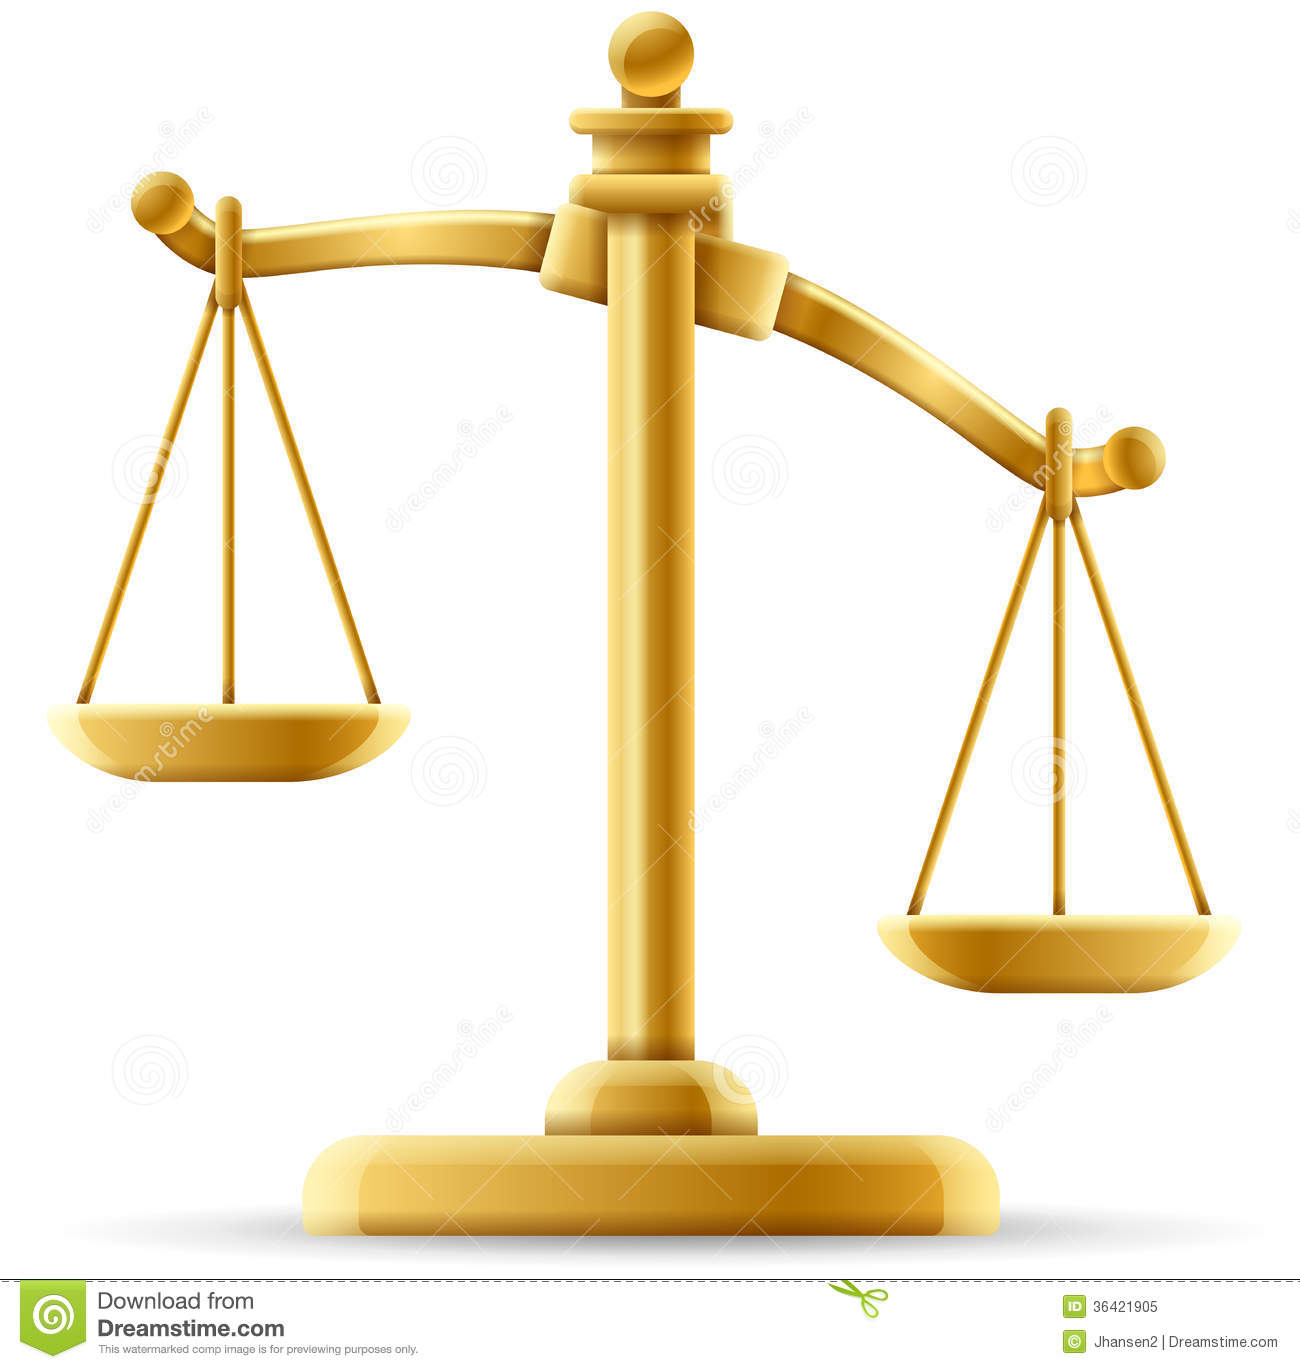 Unbalanced Justice Scale Royalty Free Stock Photo - Image: 36421905